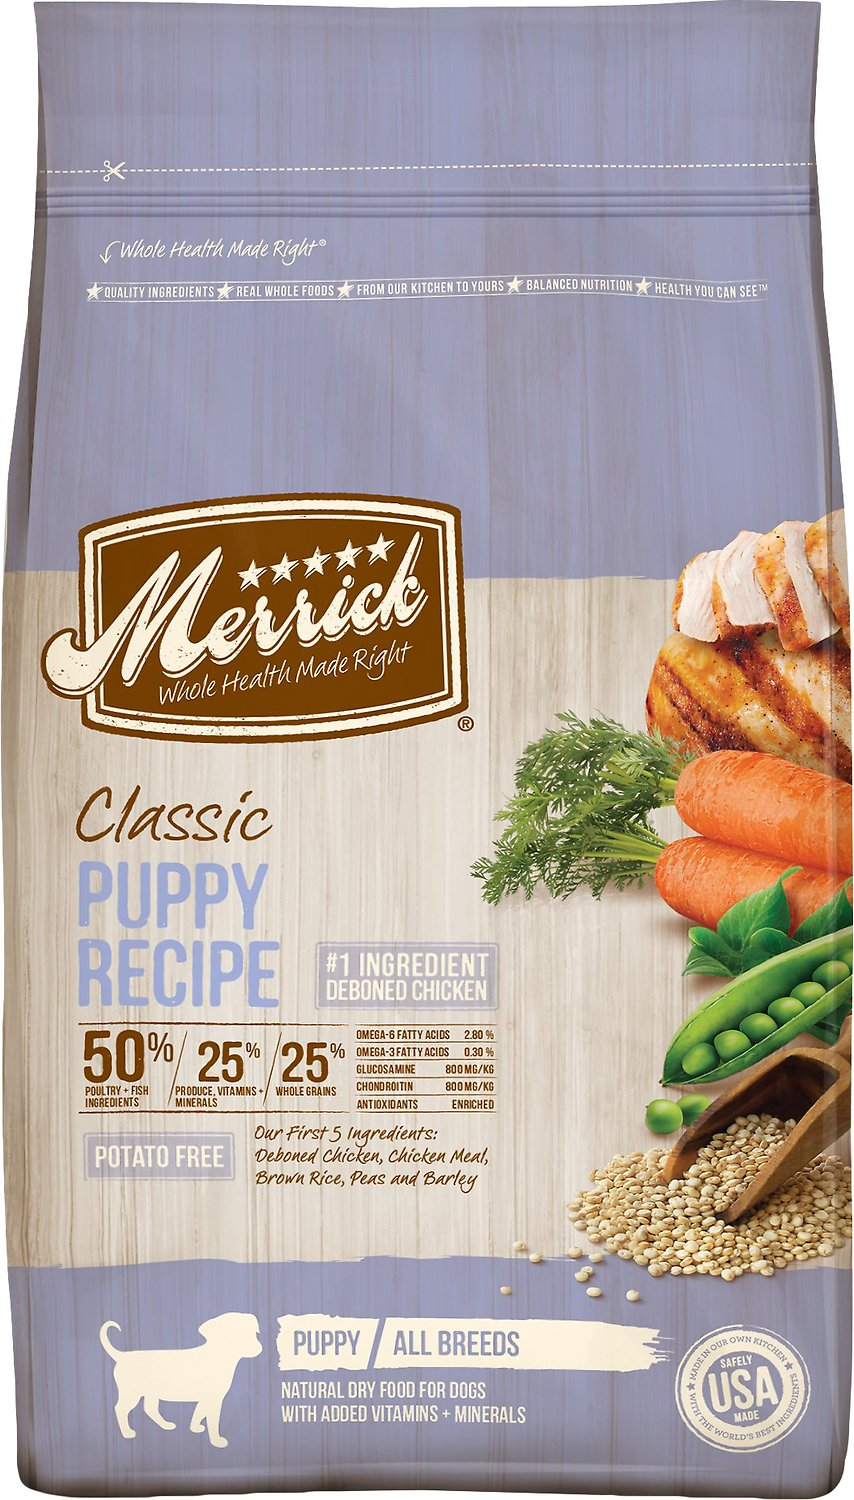 Merrick Classic Puppy Recipe Dry Dog Food Image